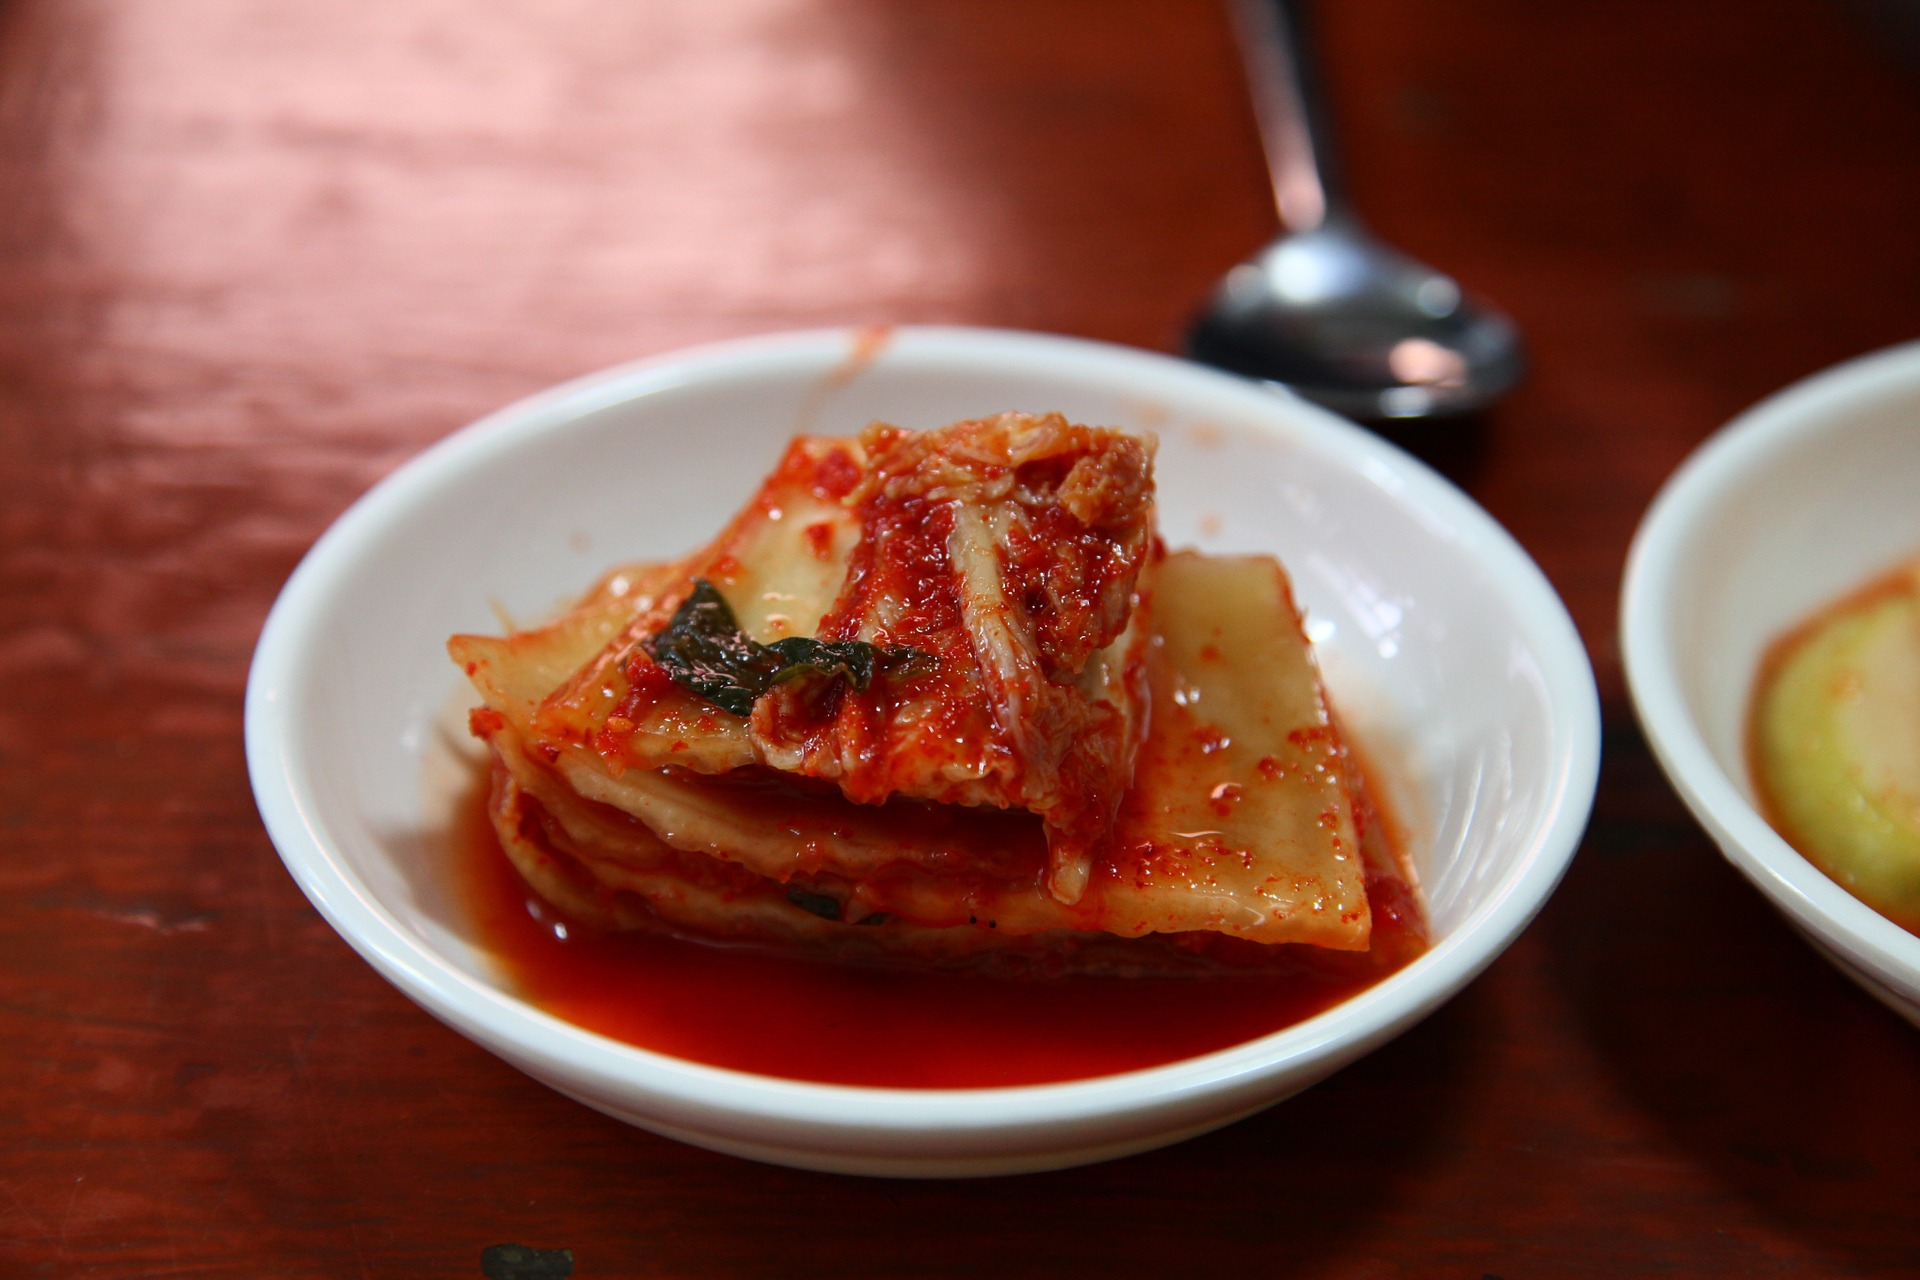 Kimchi: 4 reasons to reach for extras